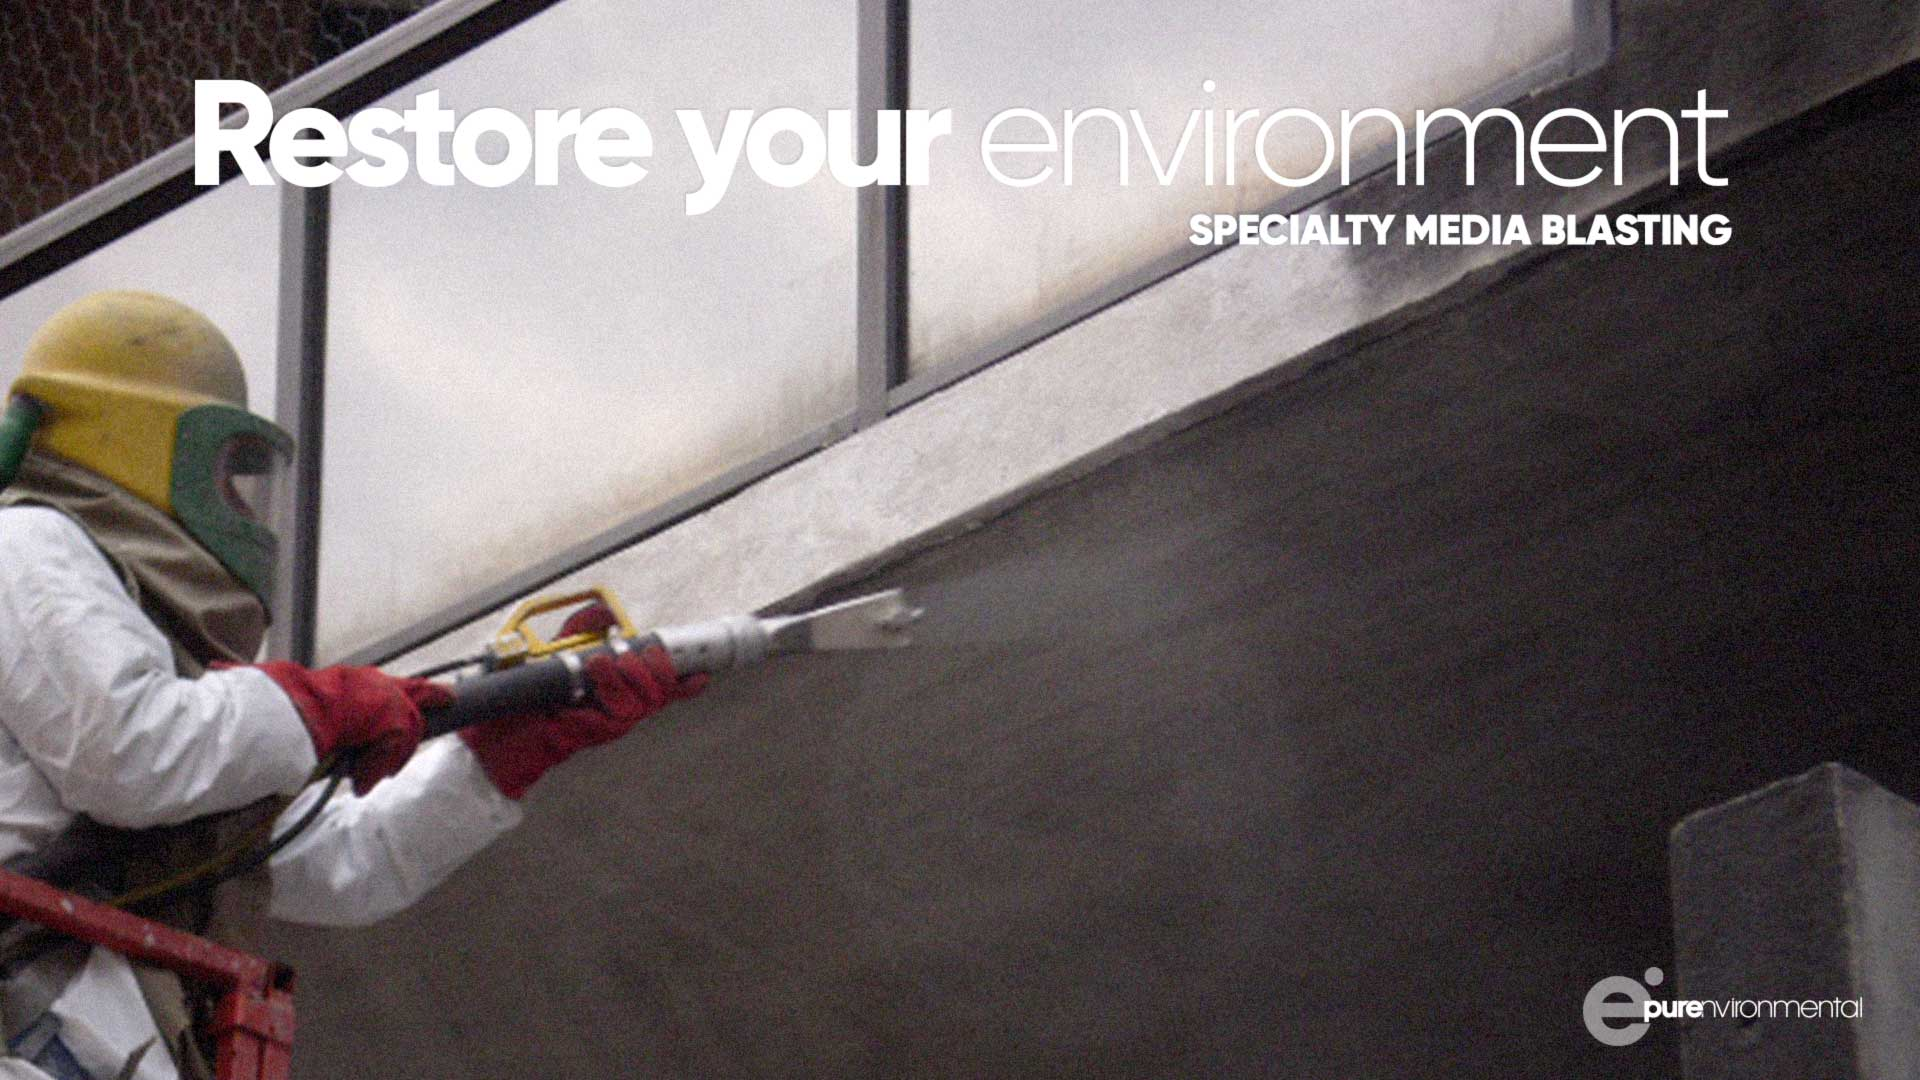 Restore Your Environment Specialty Media Blasting